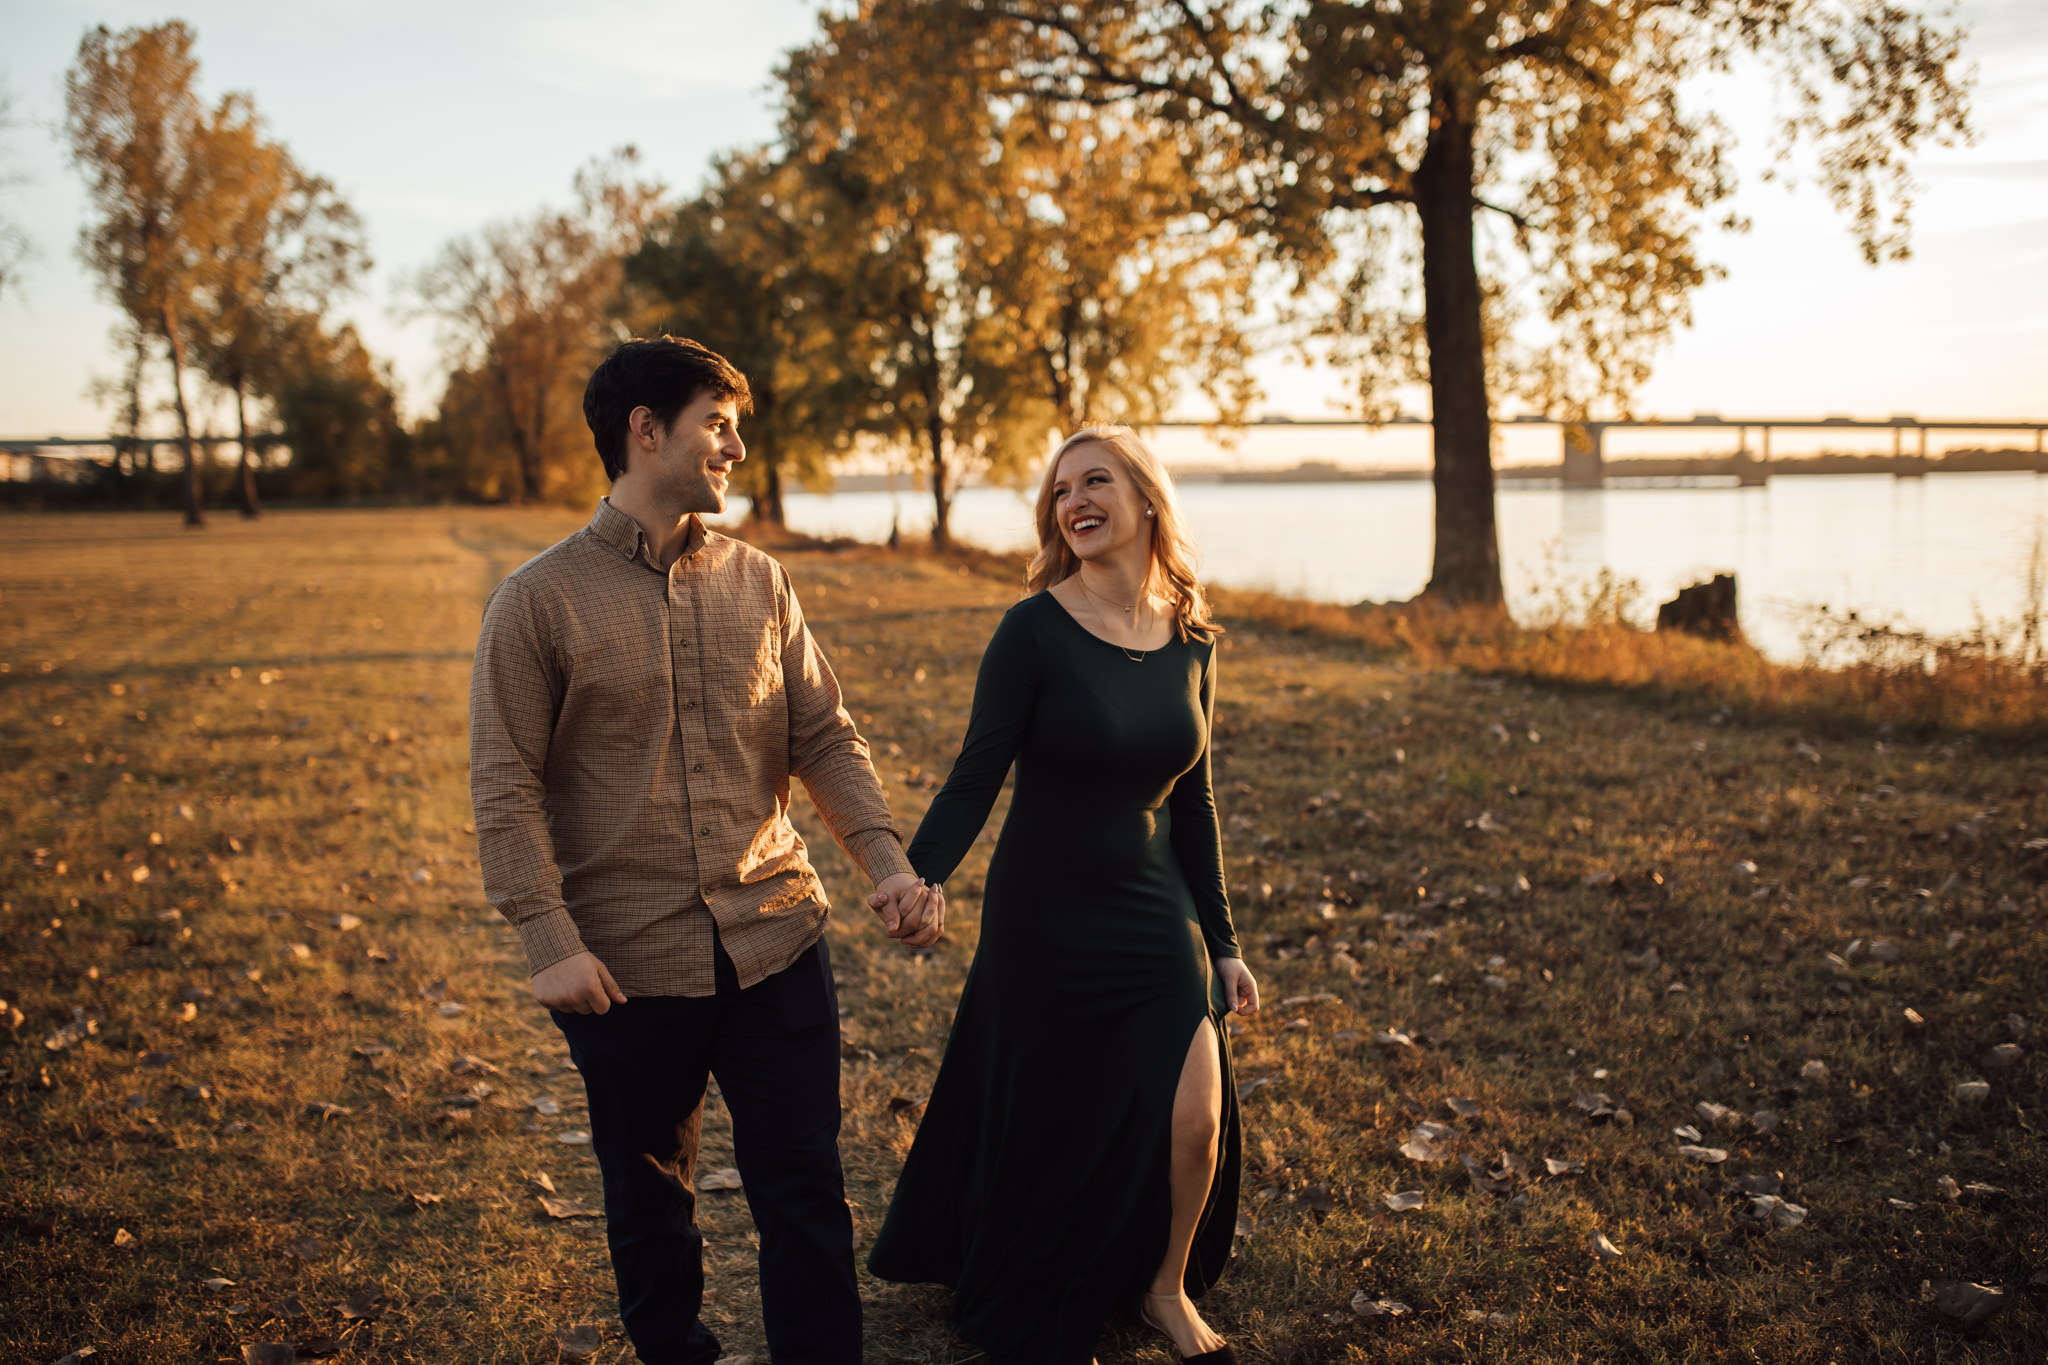 memphis-wedding-photographer-cassie-cook-photography-cafe-keough-engagement-photoshoot-coffee-engagement-34.jpg